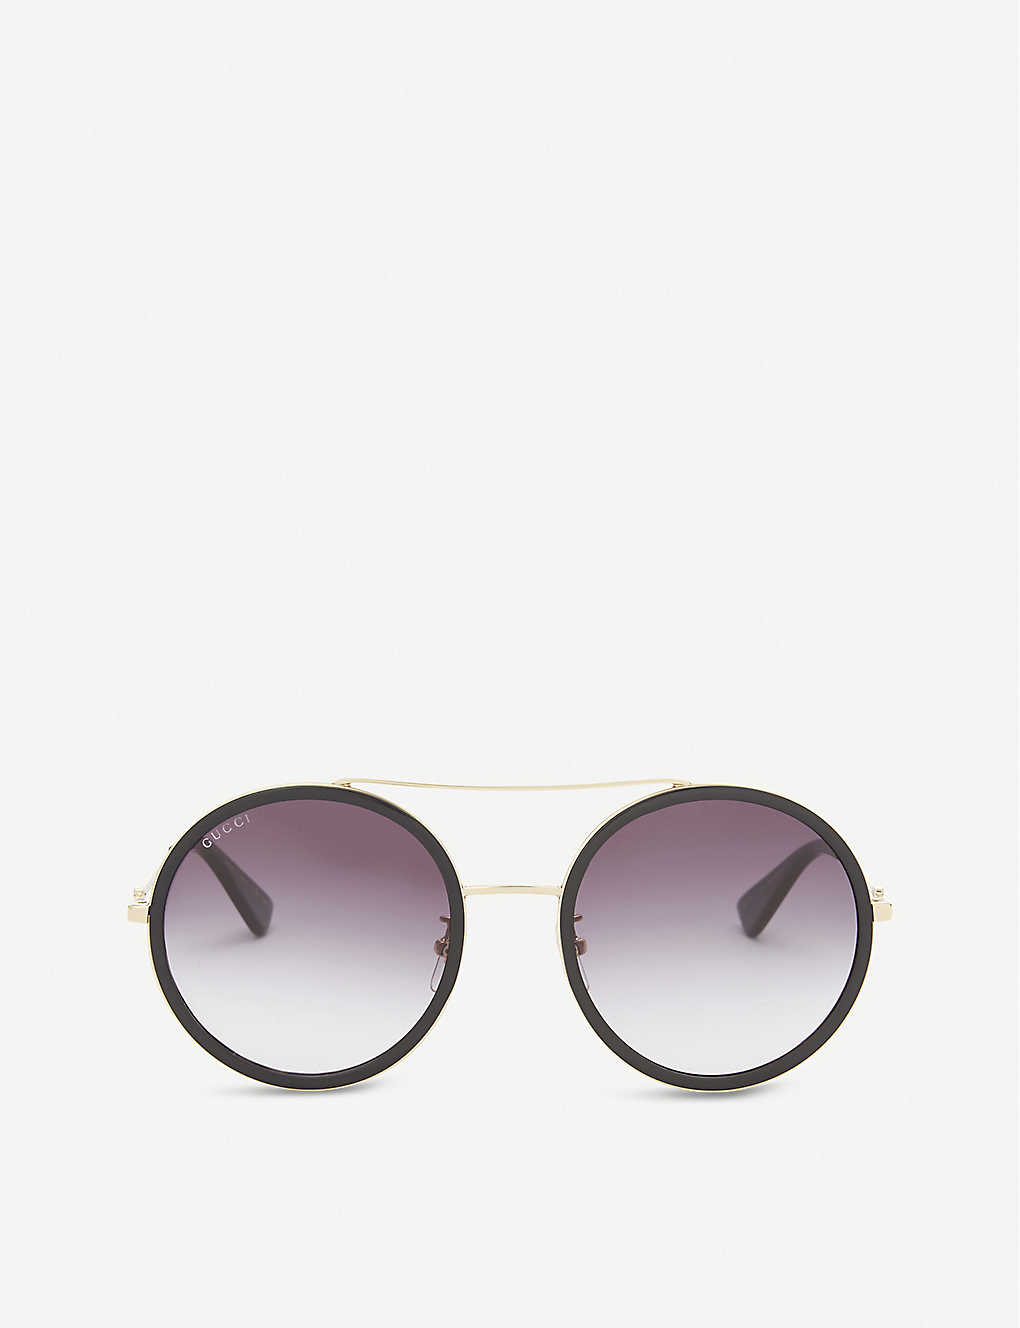 4c5acd6065b0 GUCCI - Gg0061s round-frame sunglasses